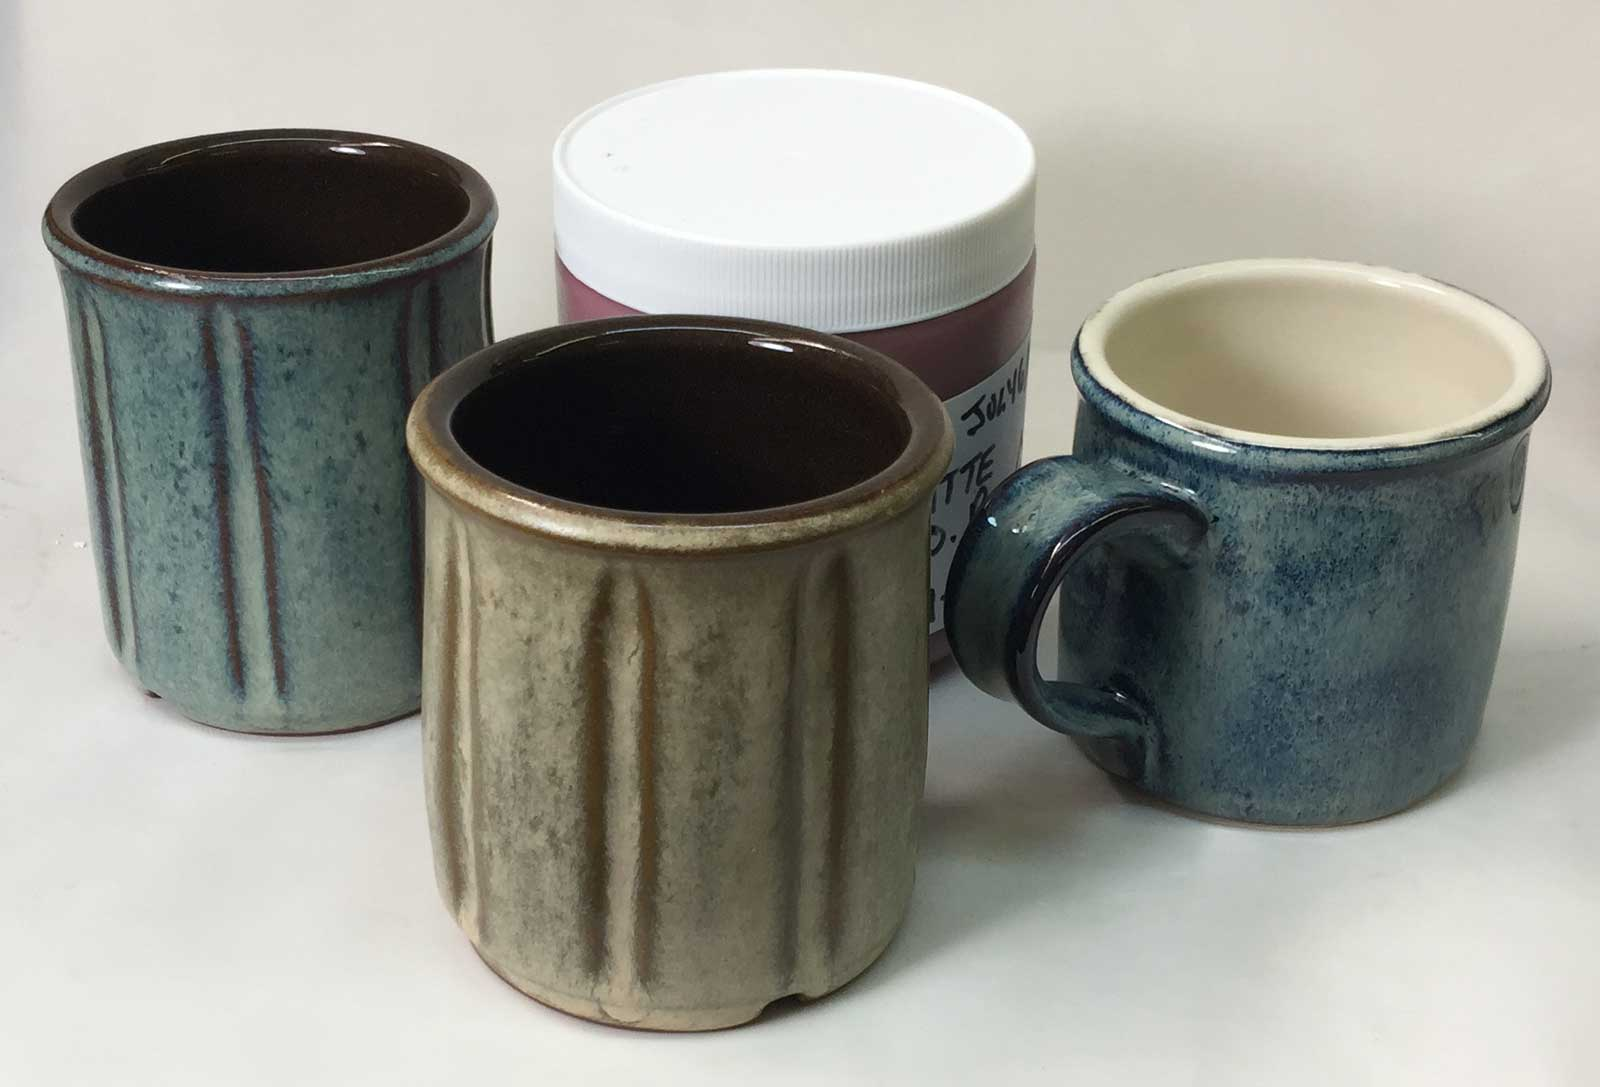 Dipping glaze recipes converted to brushing glazes. Easy and inexpensive.